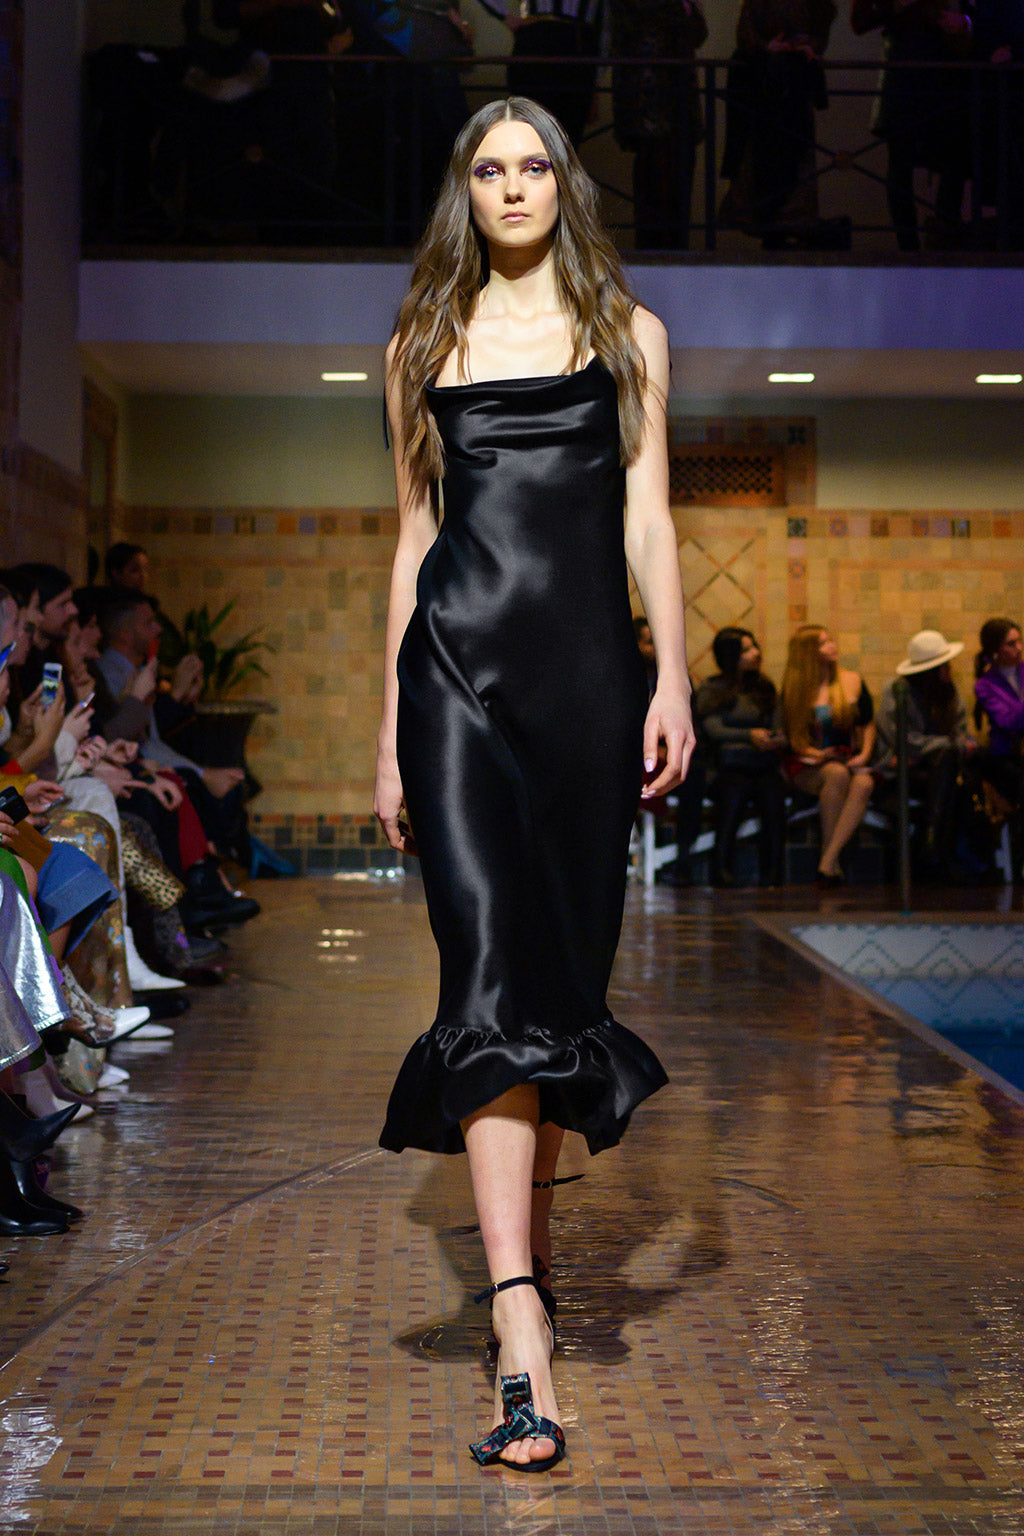 Cynthia Rowley Fall 2019 look 6 featuring a black satin slip dress with ruffle finish at the bottom